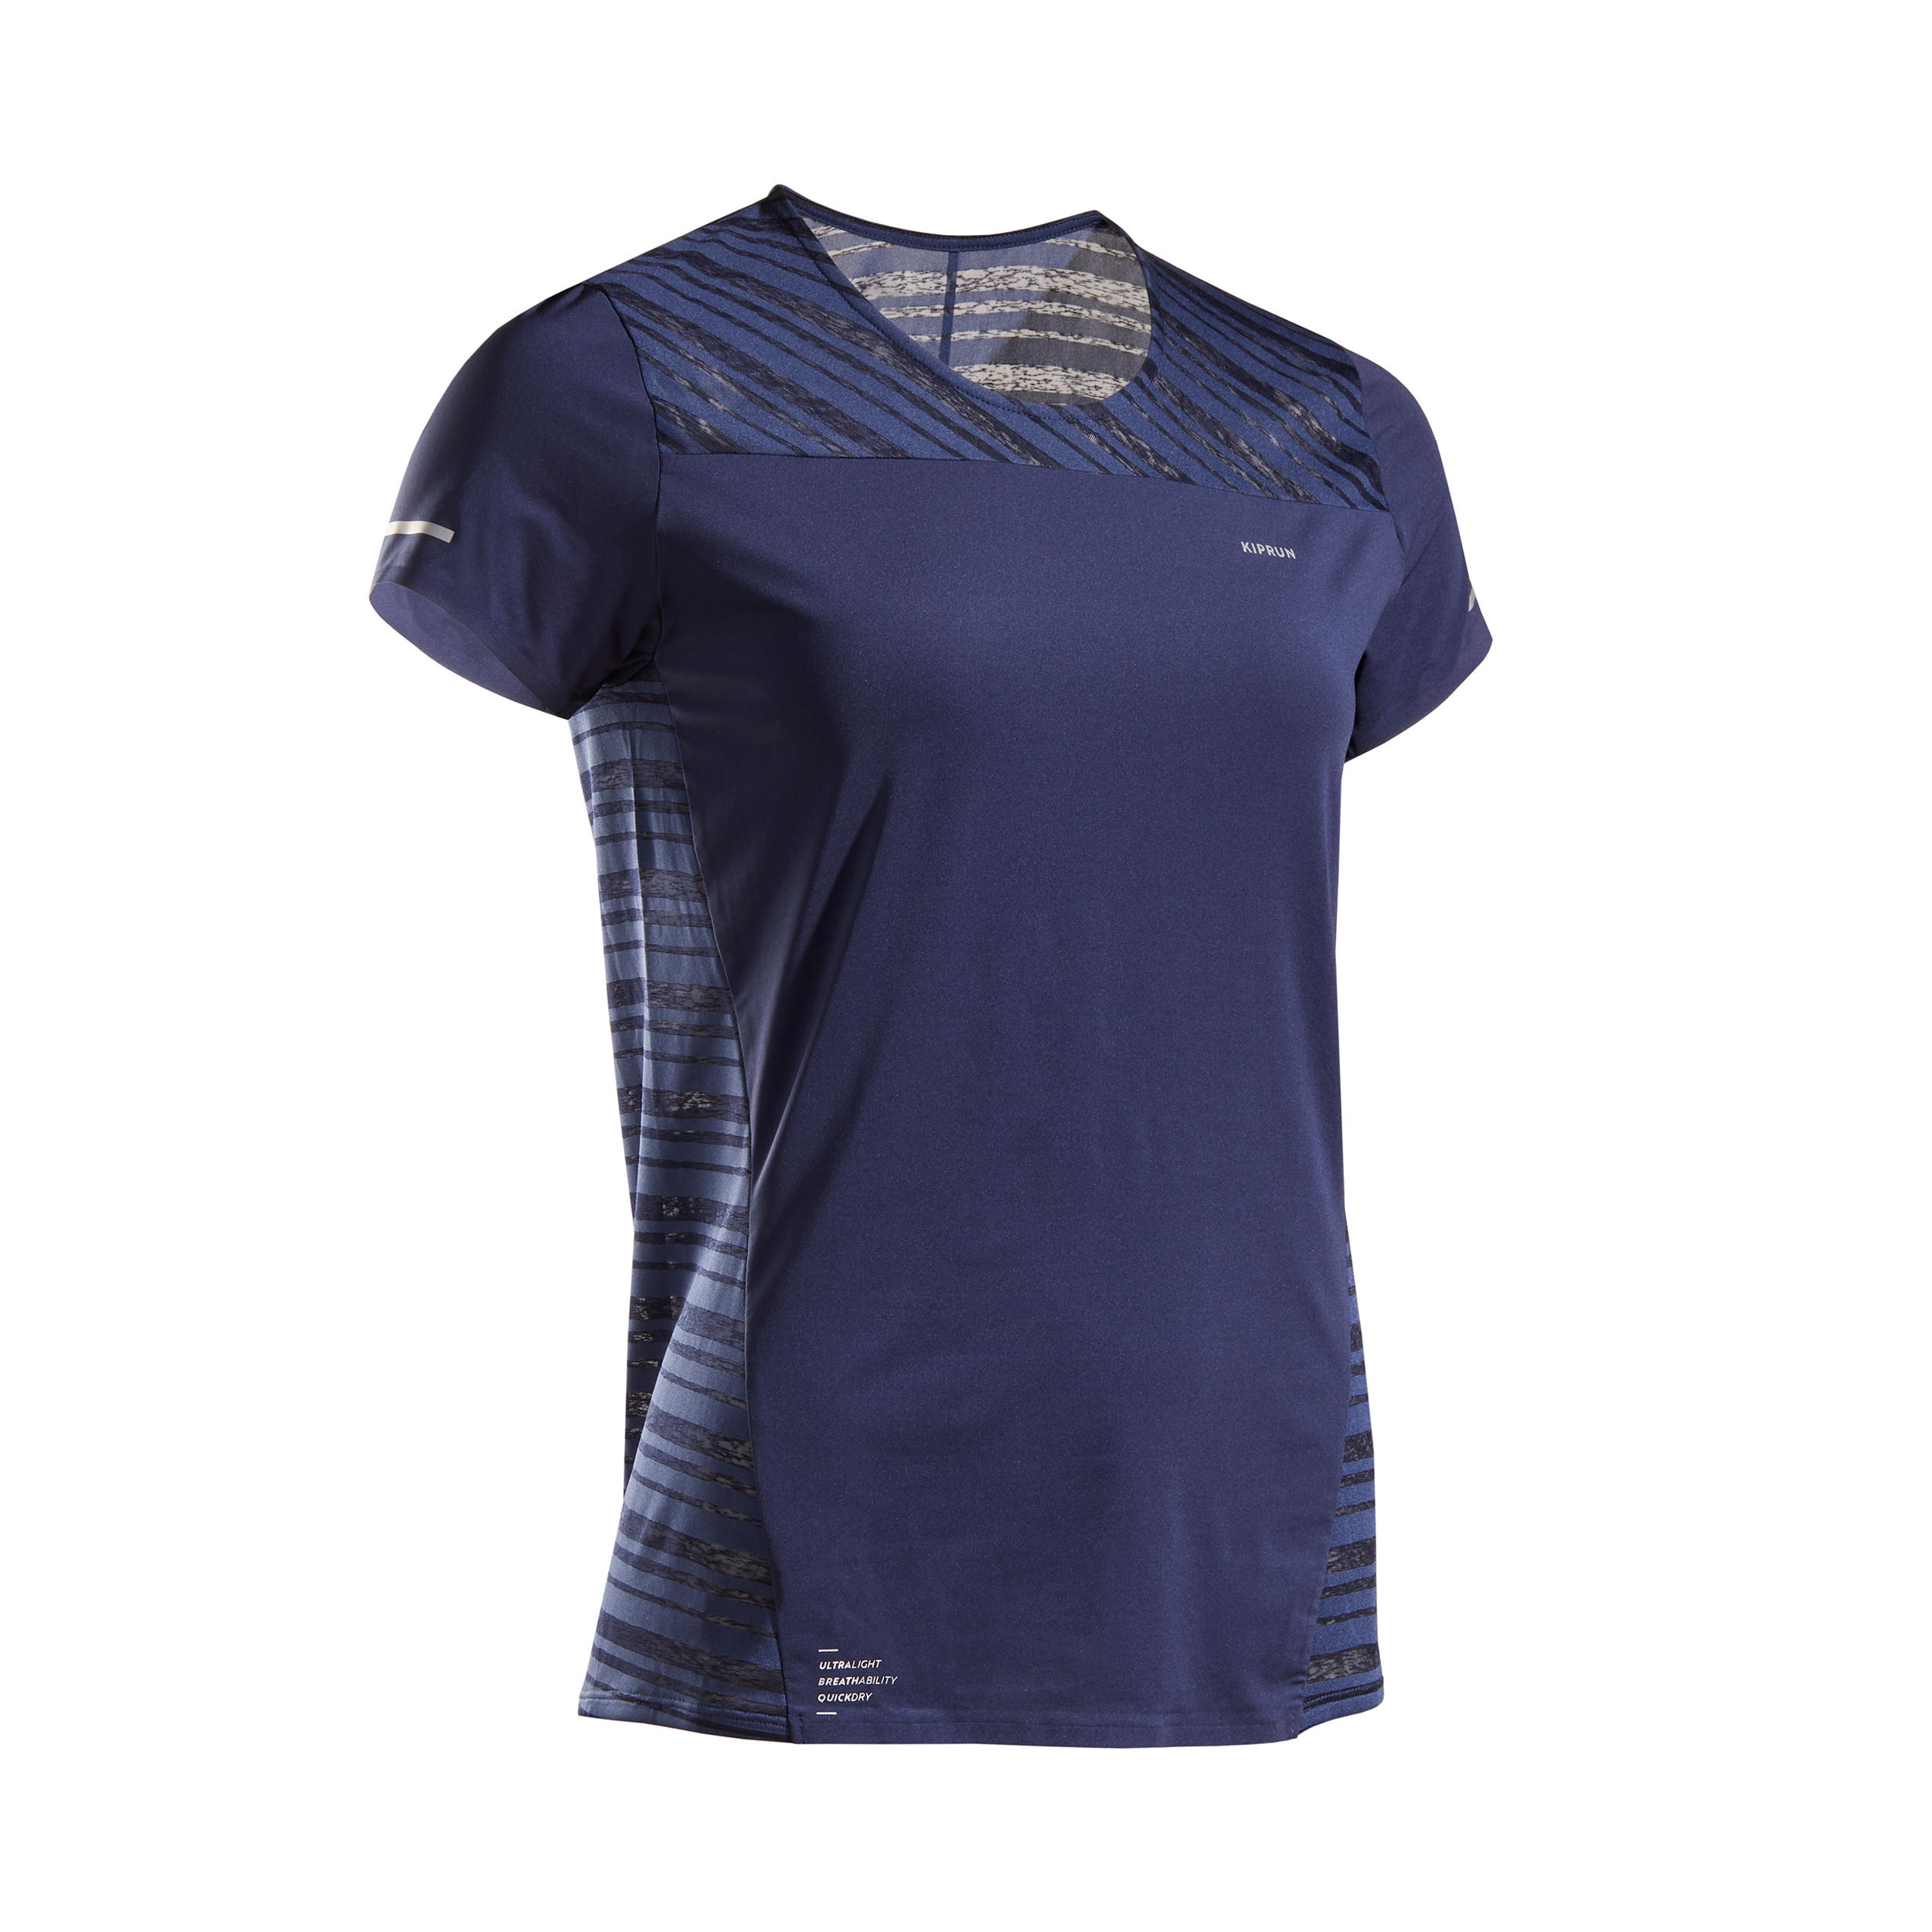 Tricou Alergare Kiprun Light imagine